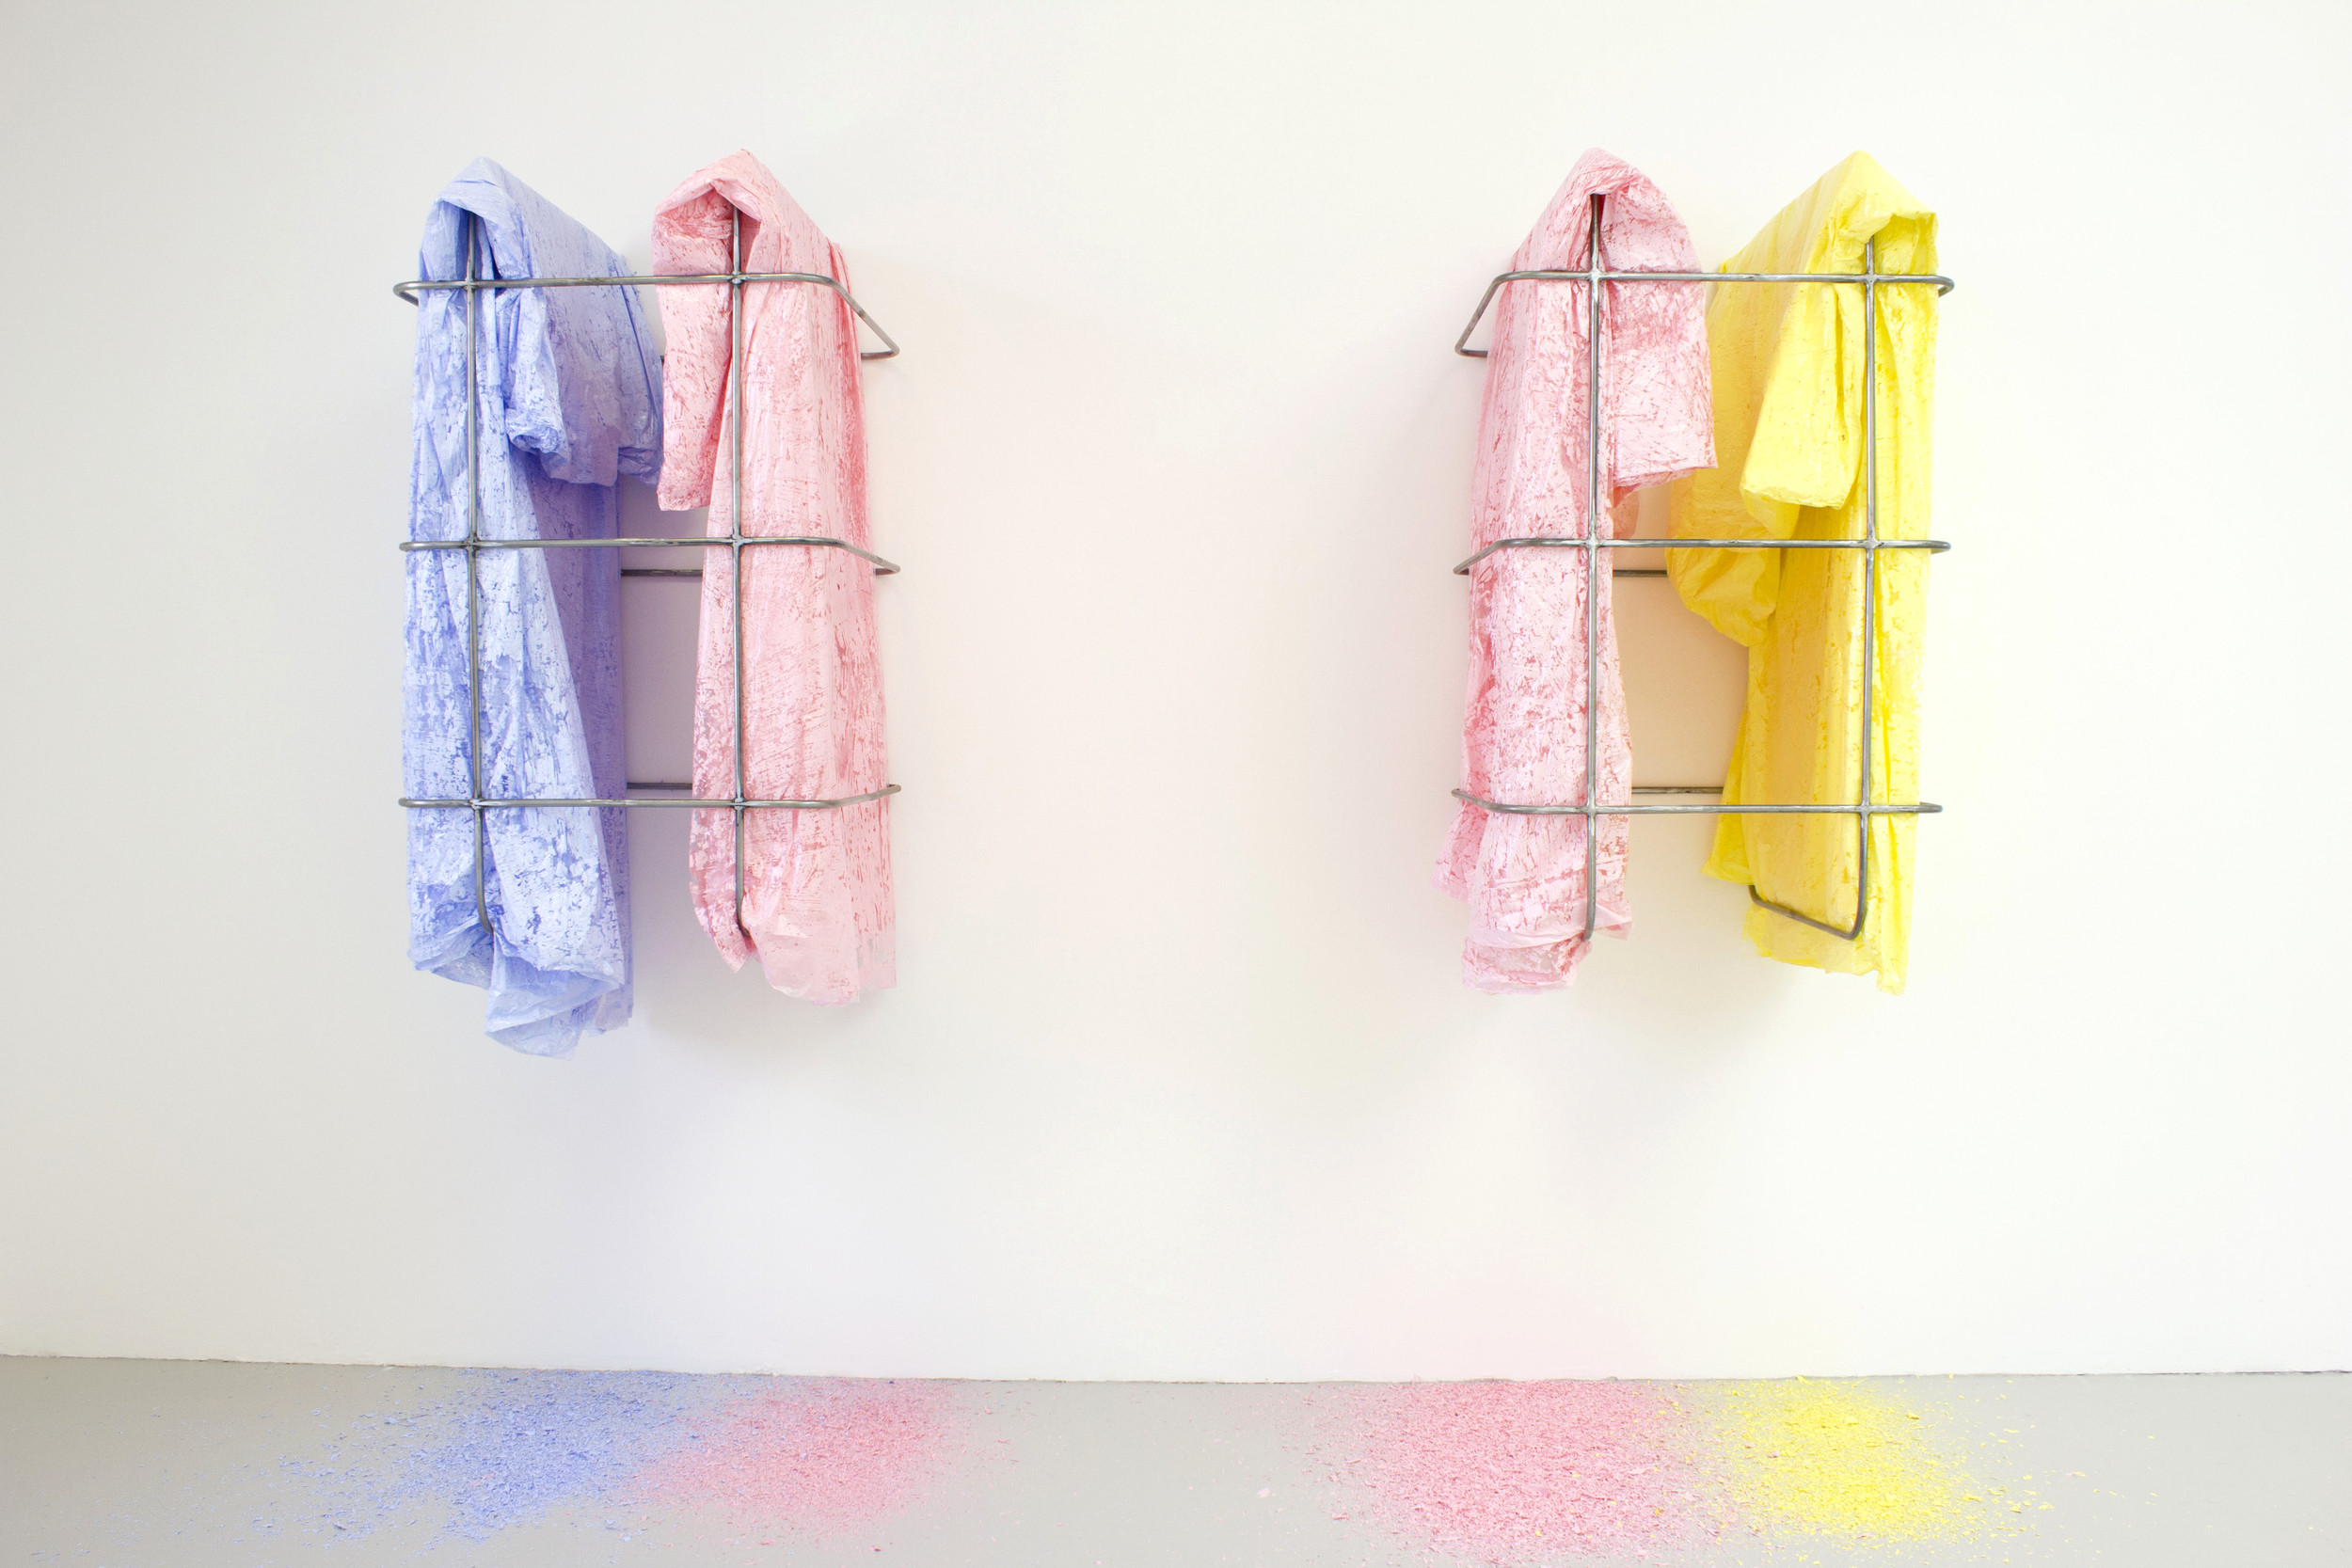 Wall Cages (Blue/Pink, Pink/Yellow) . Steel, Acrylic on Polythene, 2013